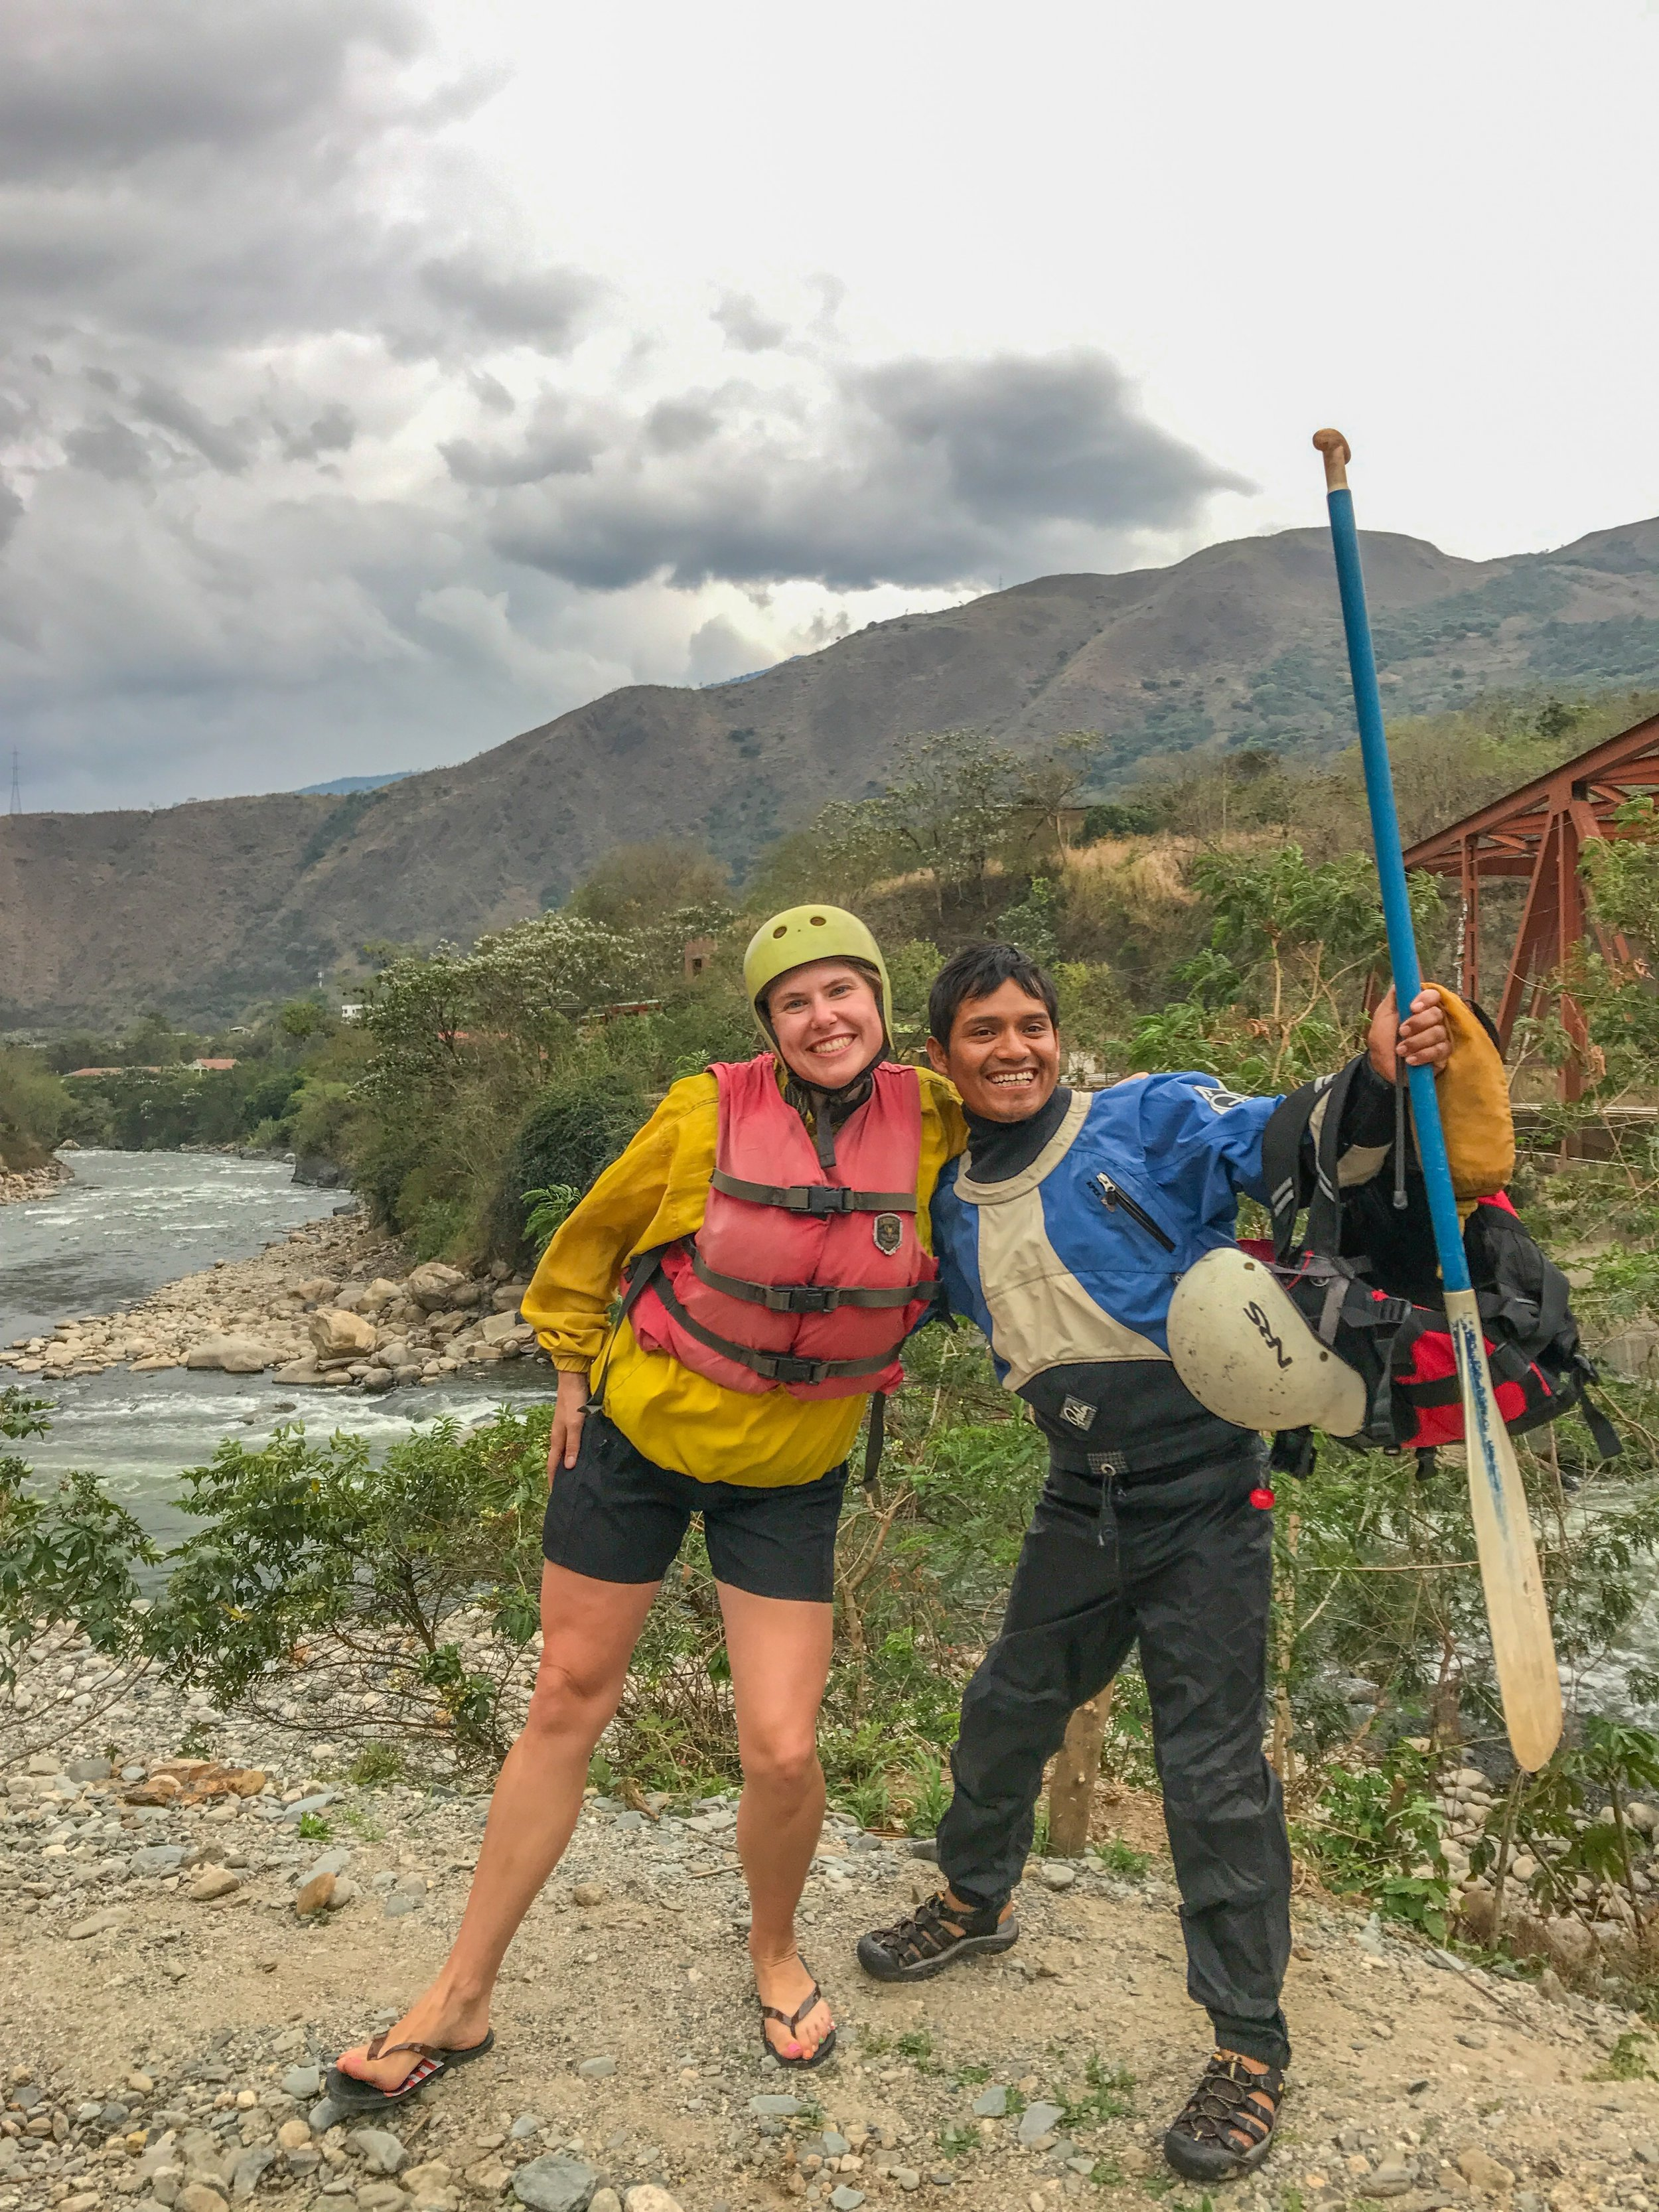 Rafting along the Urubamba River (do NOT bring a camera on the boat)